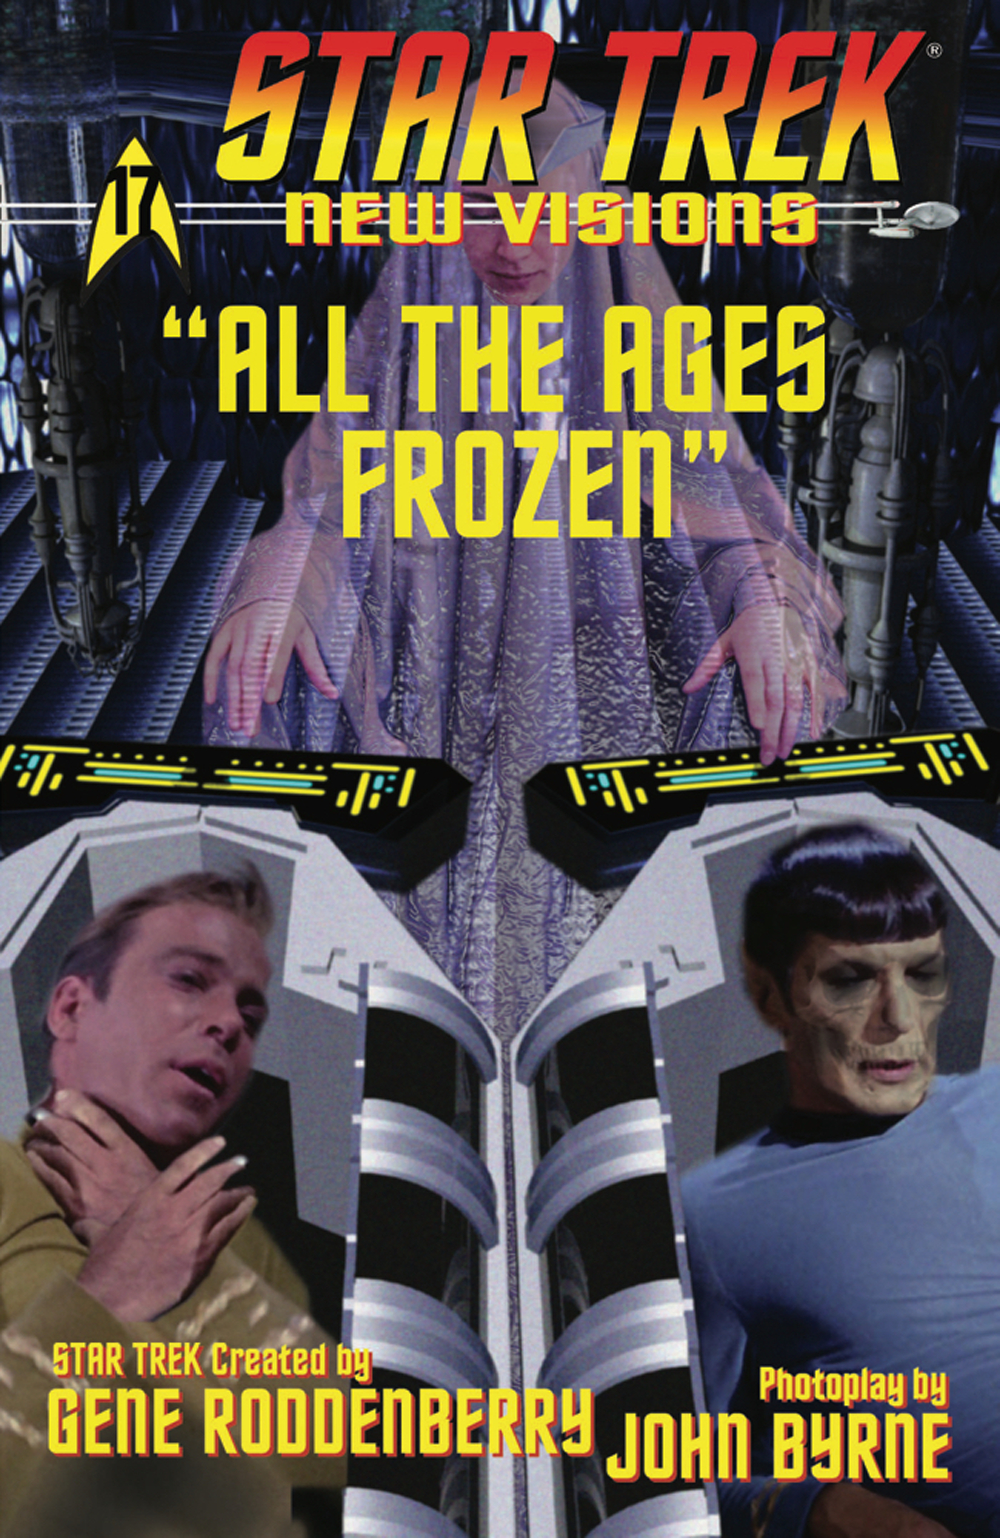 STAR TREK NEW VISIONS ALL THE AGES FROZEN